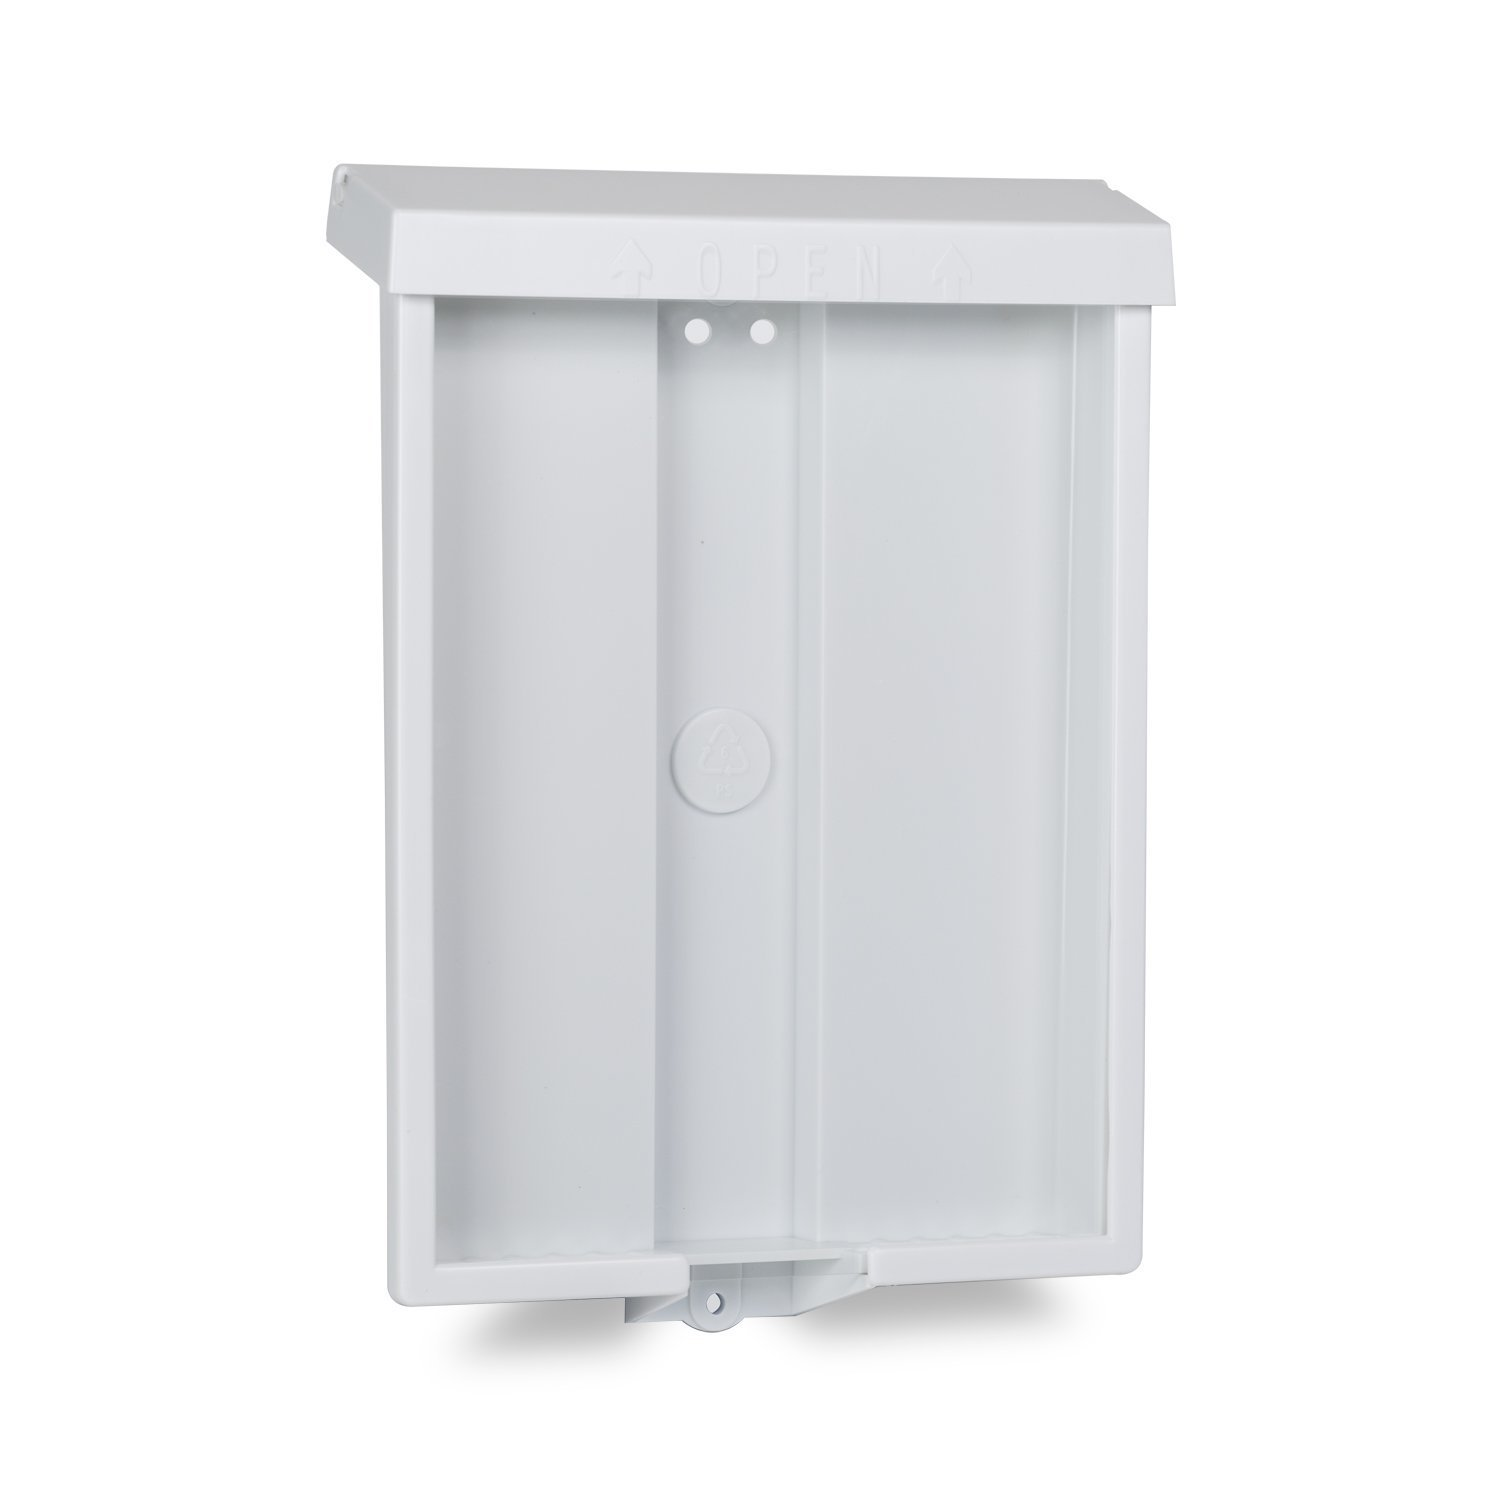 Source One Outdoor Realtor Style Brochure Holder Color Variety White or Black Options Available (6 Pack, White) by SOURCEONE.ORG (Image #1)